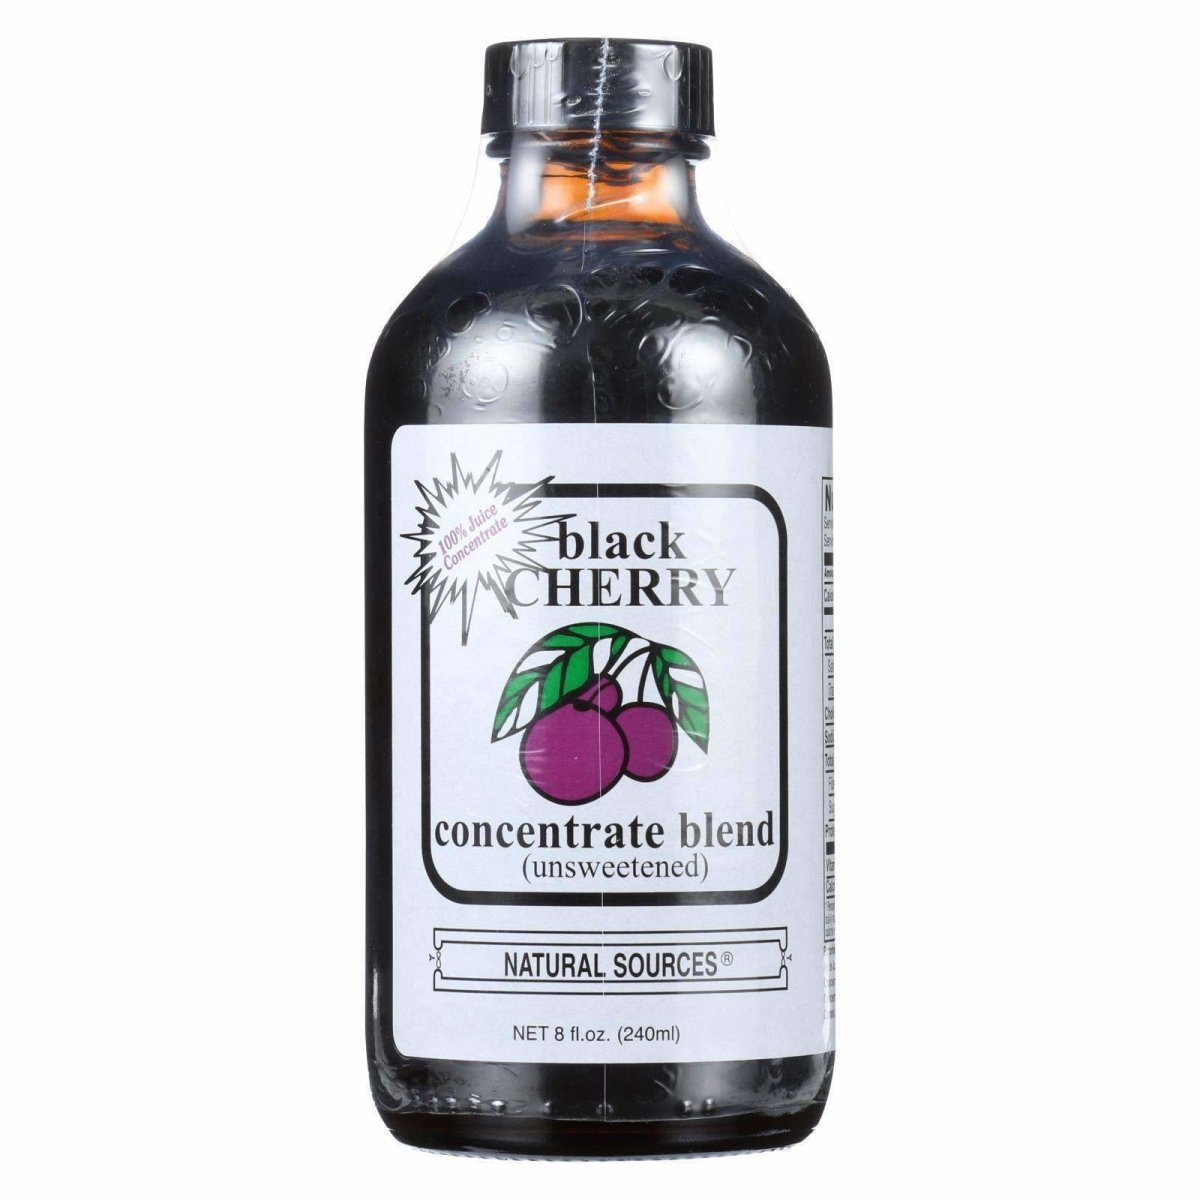 Black Cherry Concentrated Blend 8 Oz